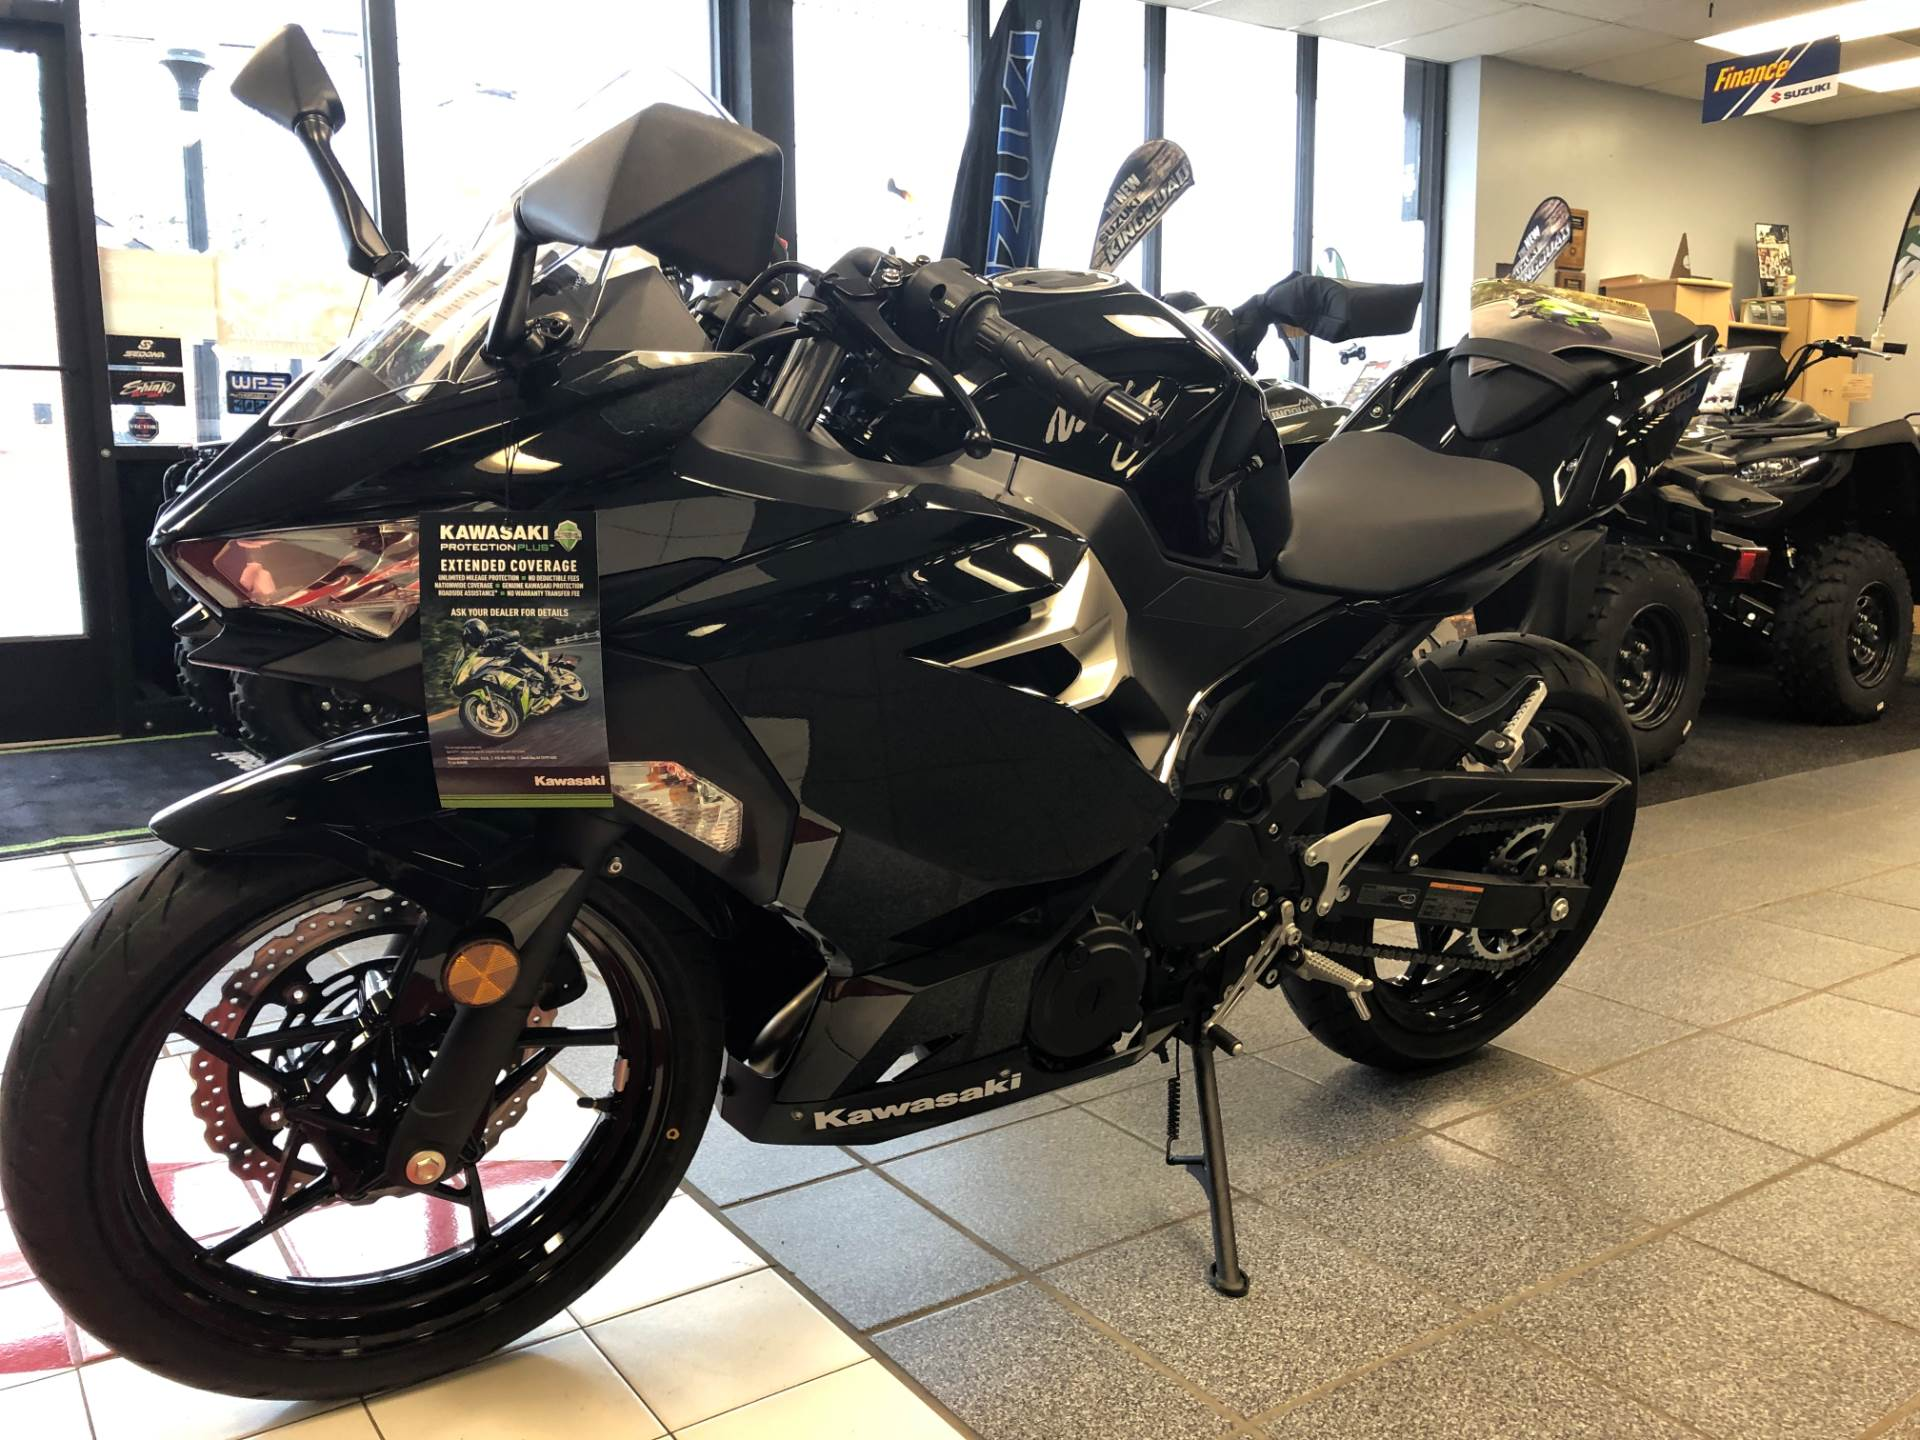 New 2018 Kawasaki Ninja 400 Motorcycles In Highland Springs Va